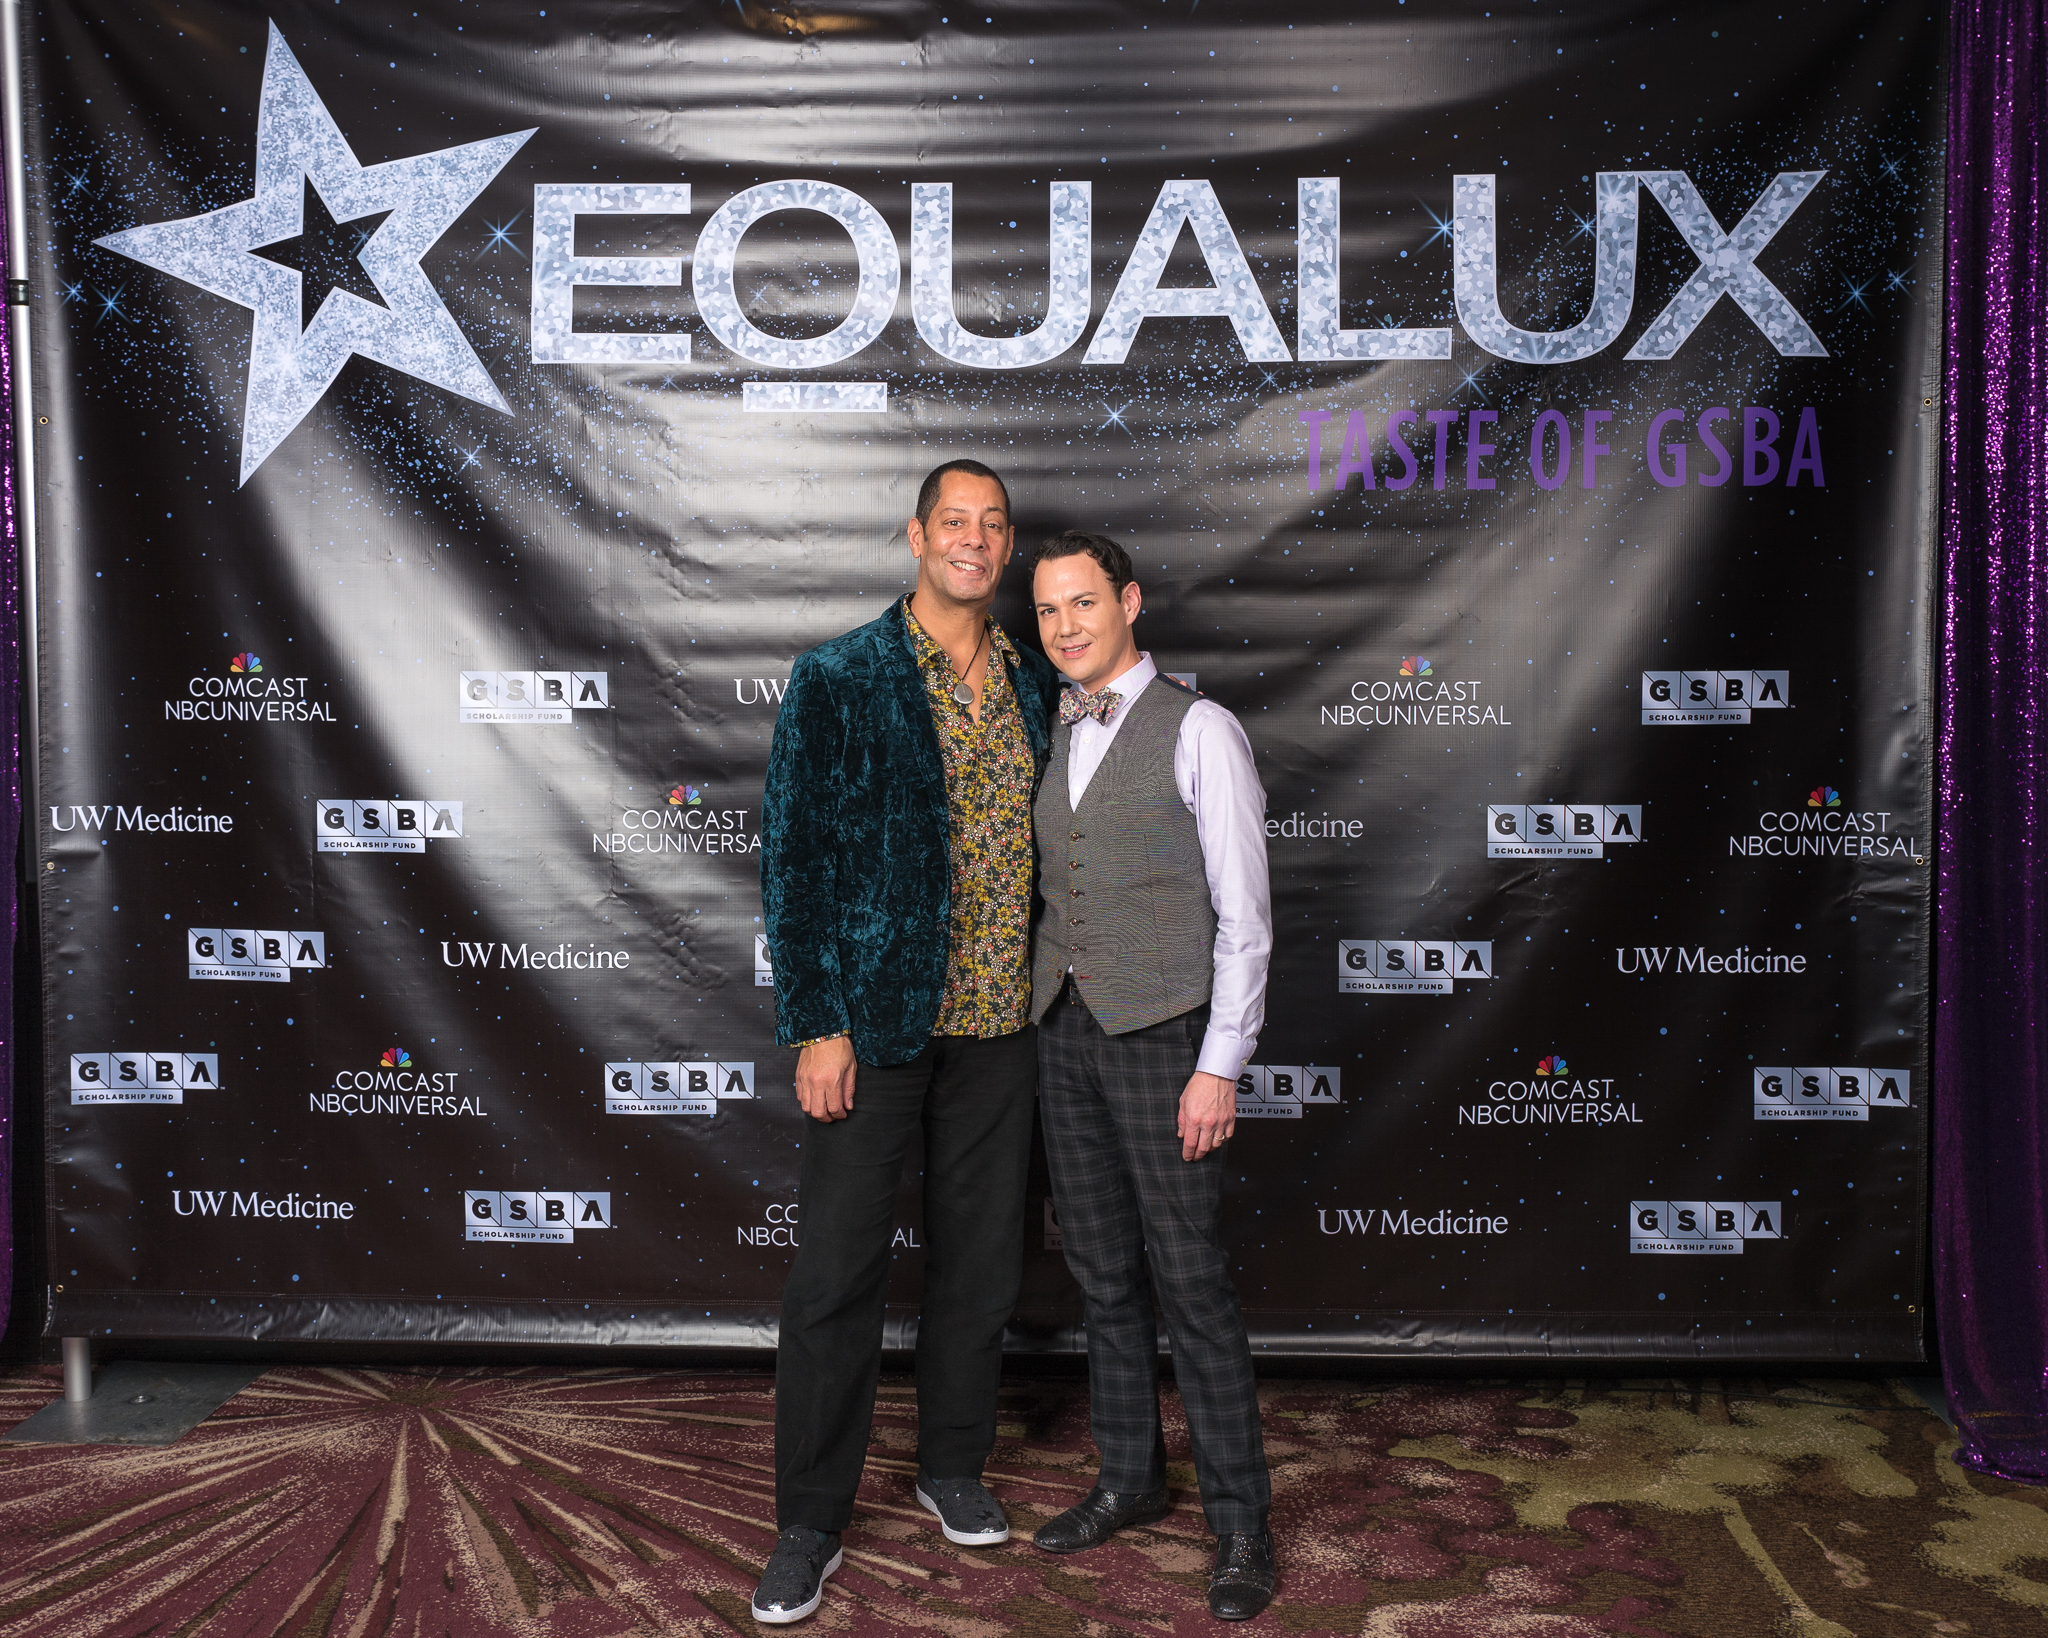 111718_GSBA EQUALUX at The Westin Seattle (Credit- Nate Gowdy)-24.jpg